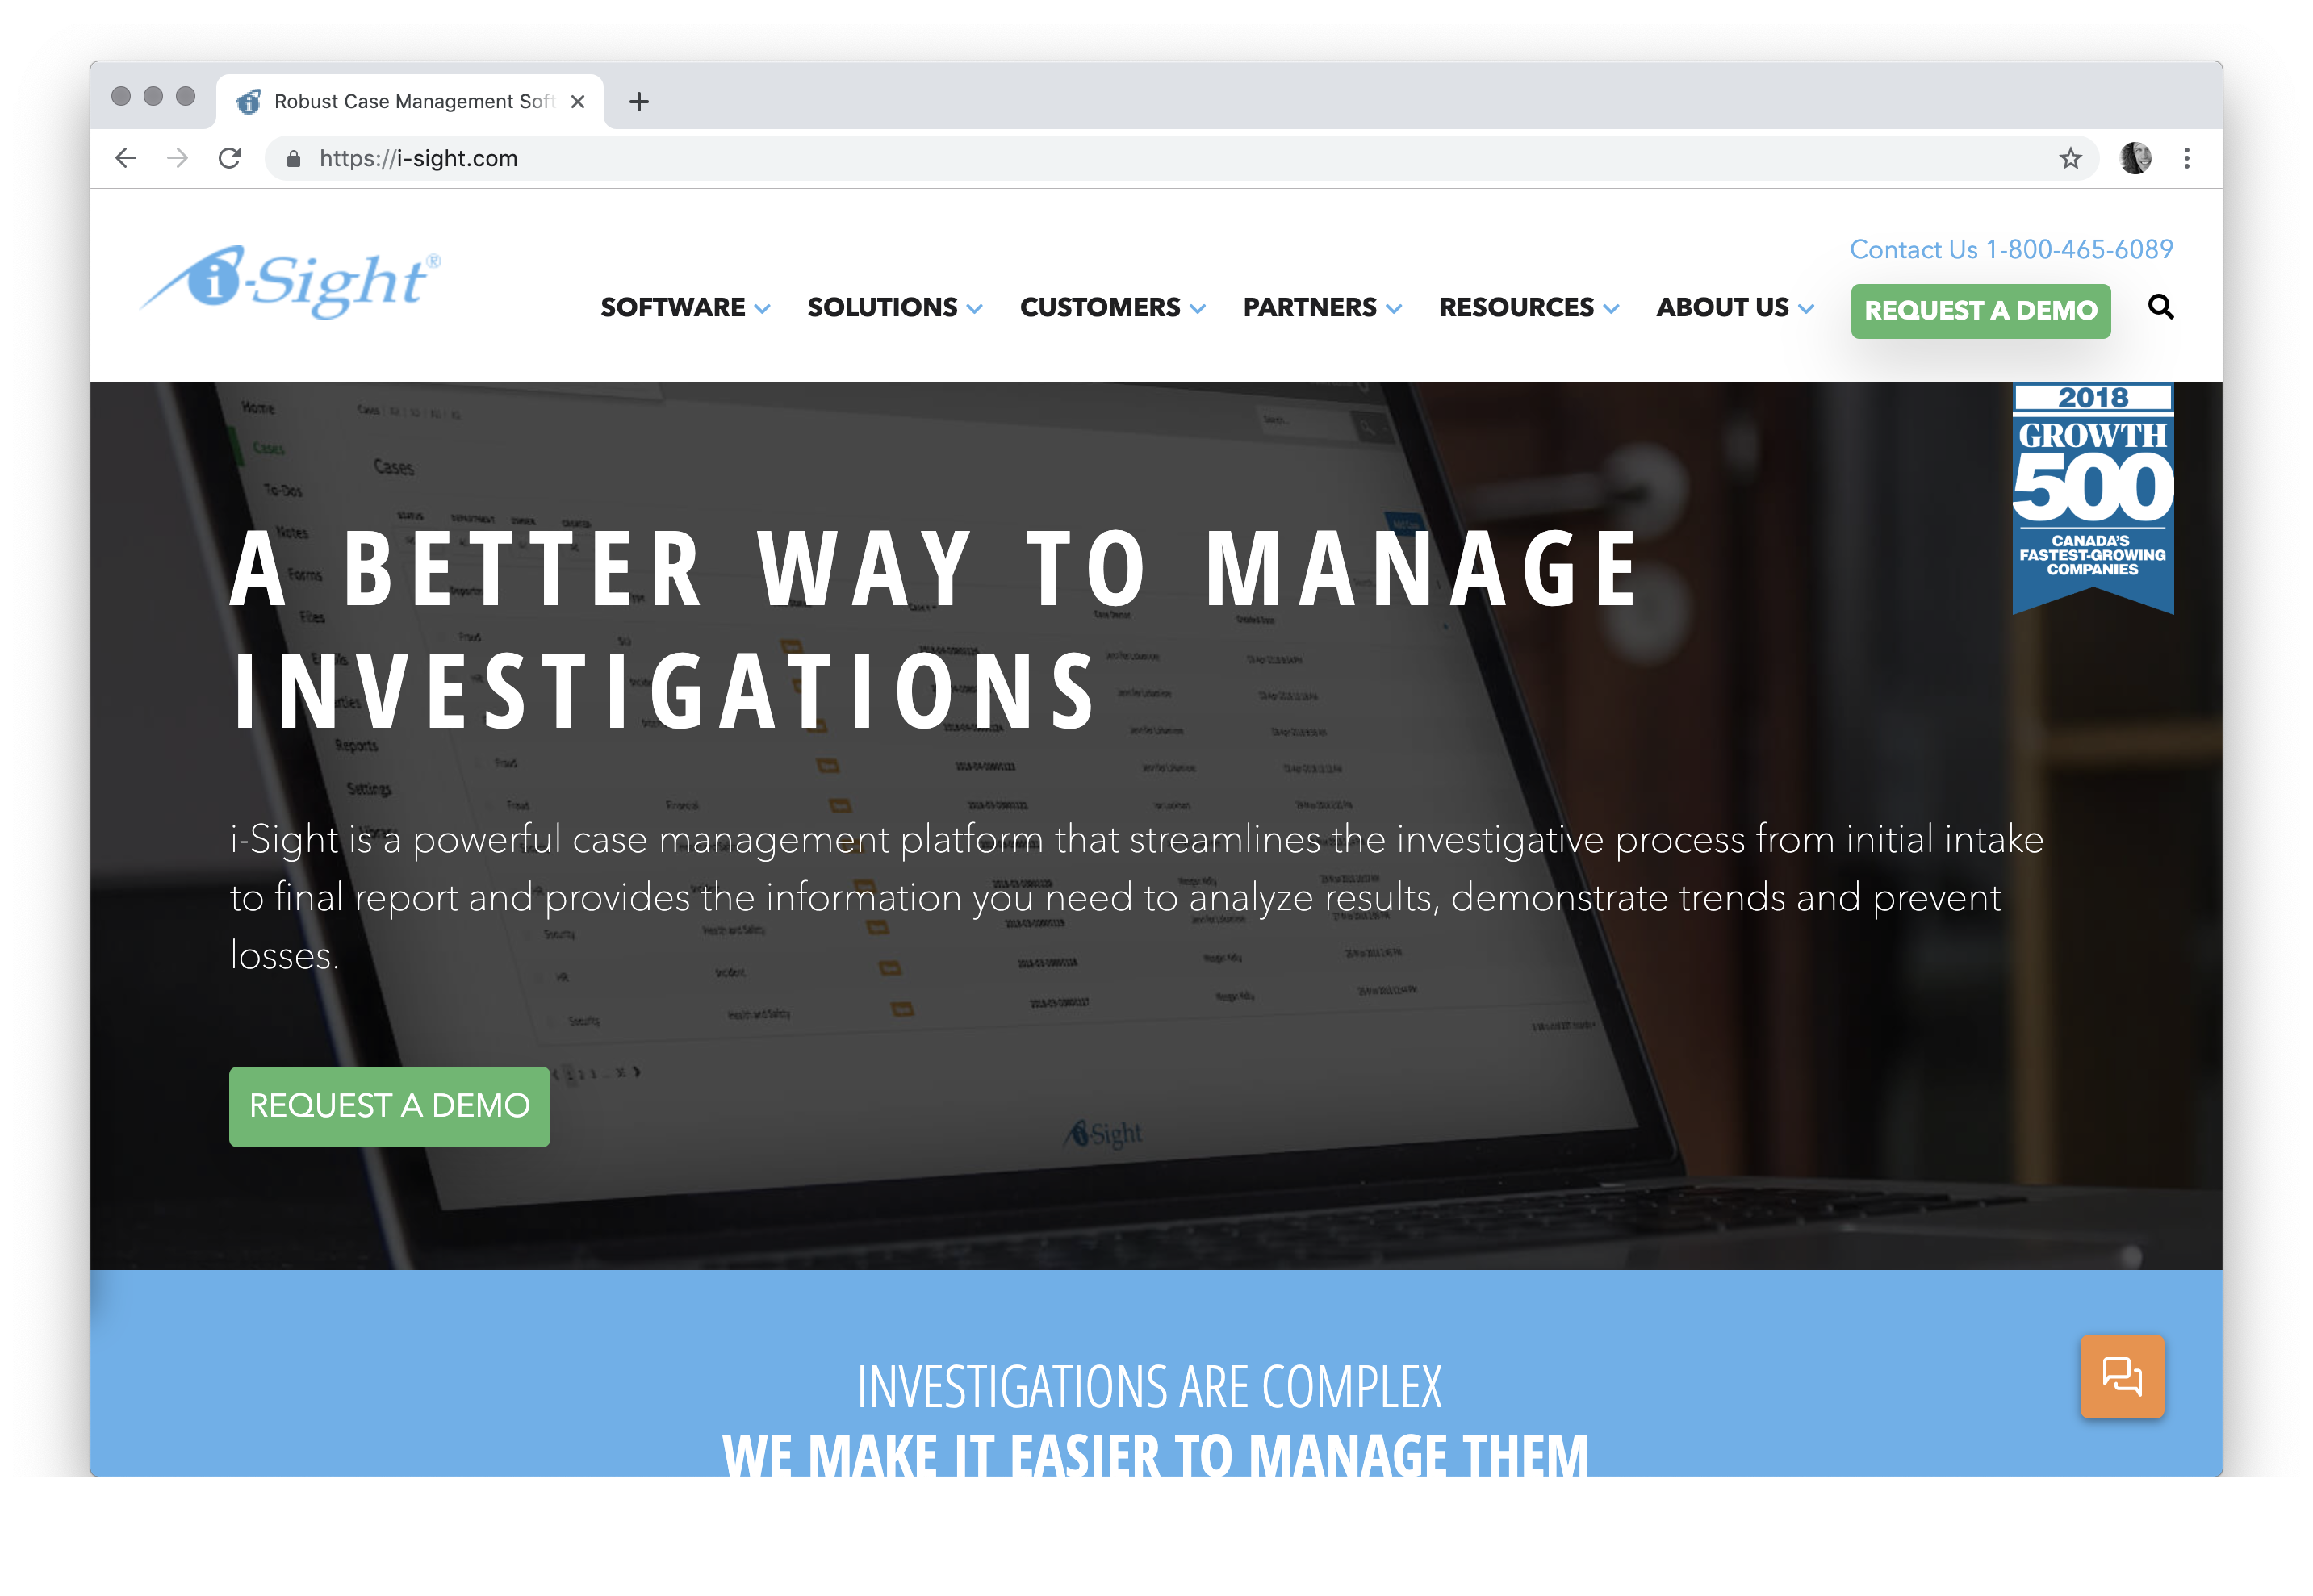 Robust Case Management Software & Multi-Industry Investigation Solutions | i-Sight